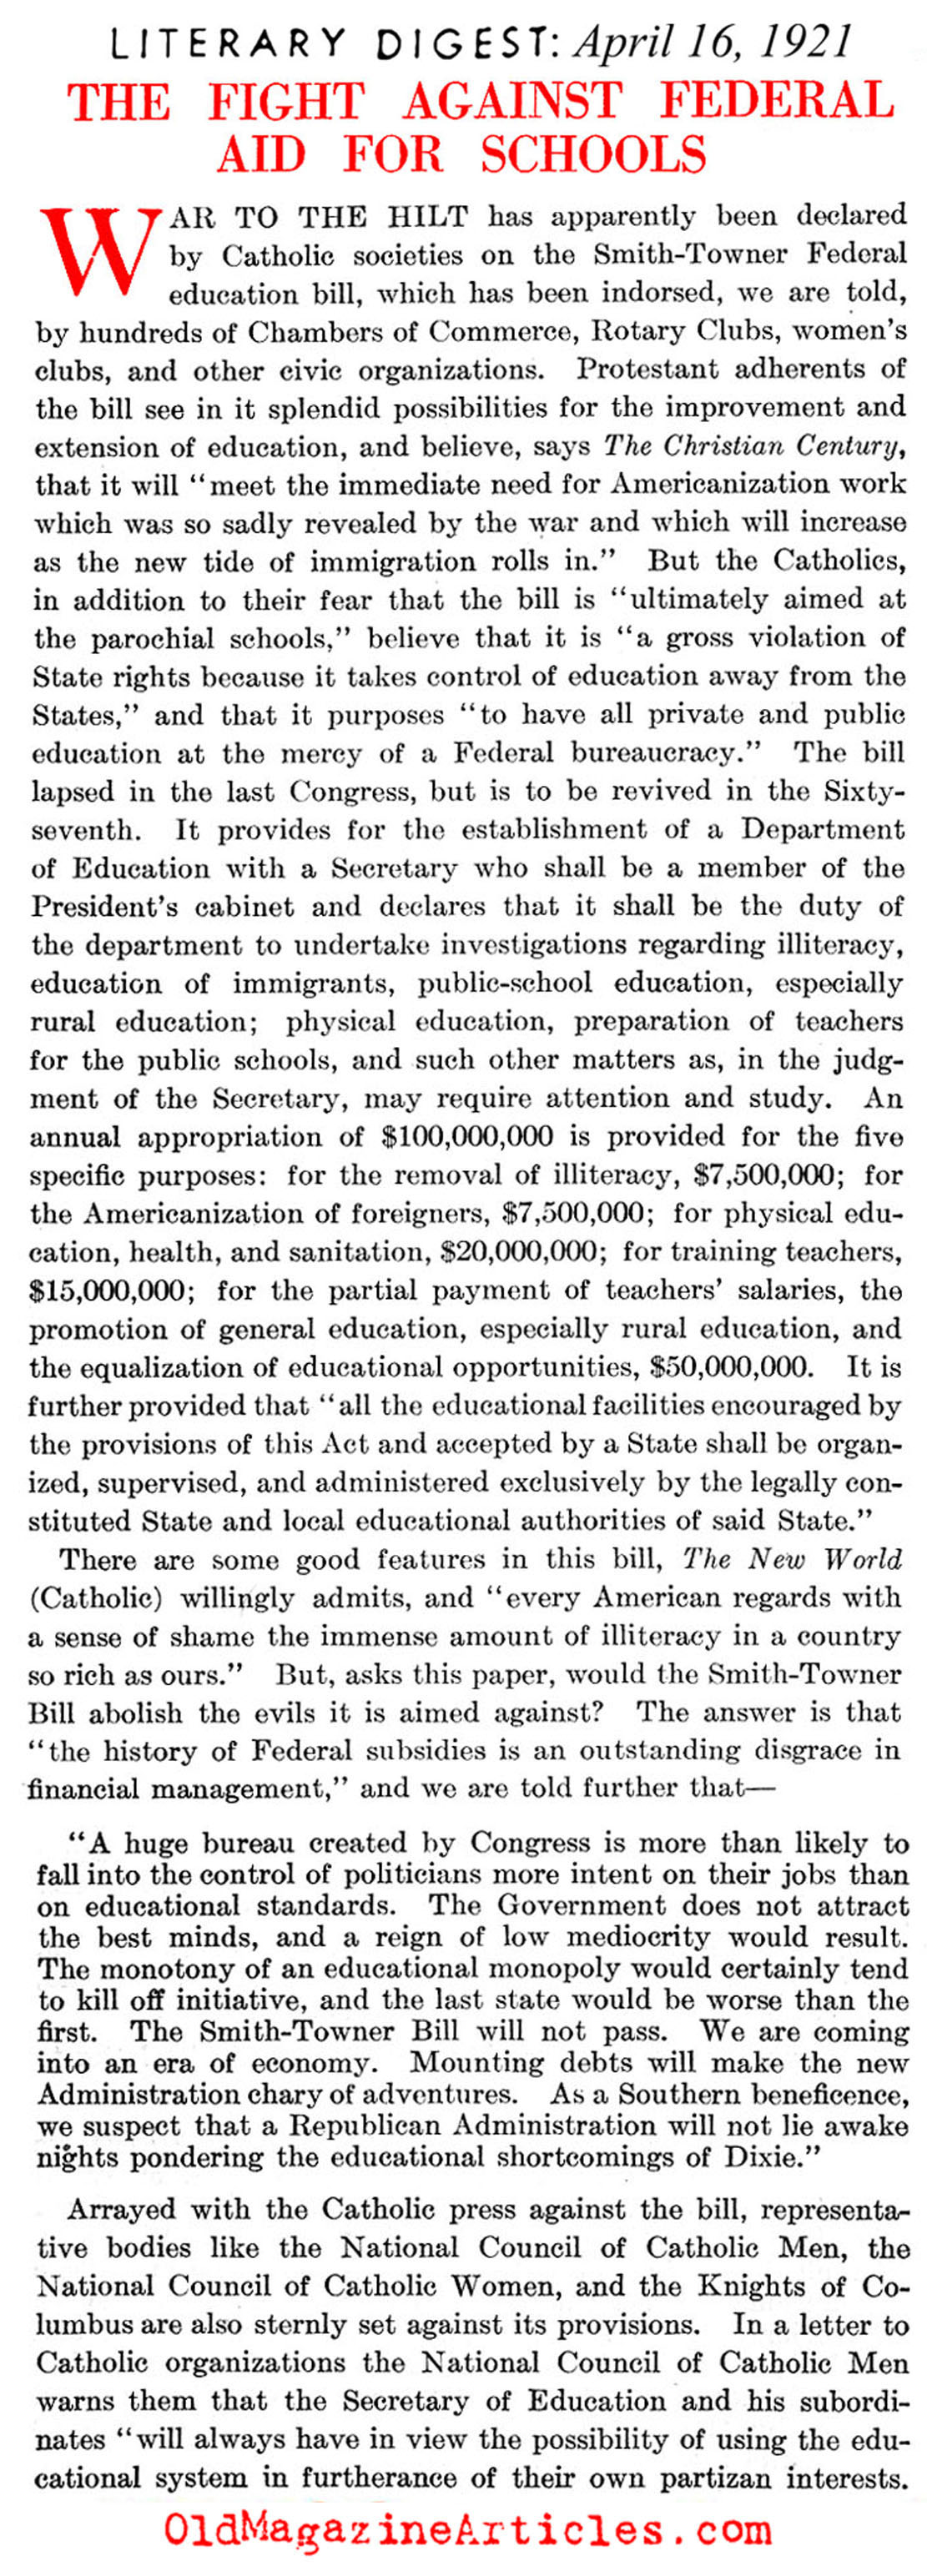 Should the Federal Government Fund Schools at All? (Literary Digest, 1921)